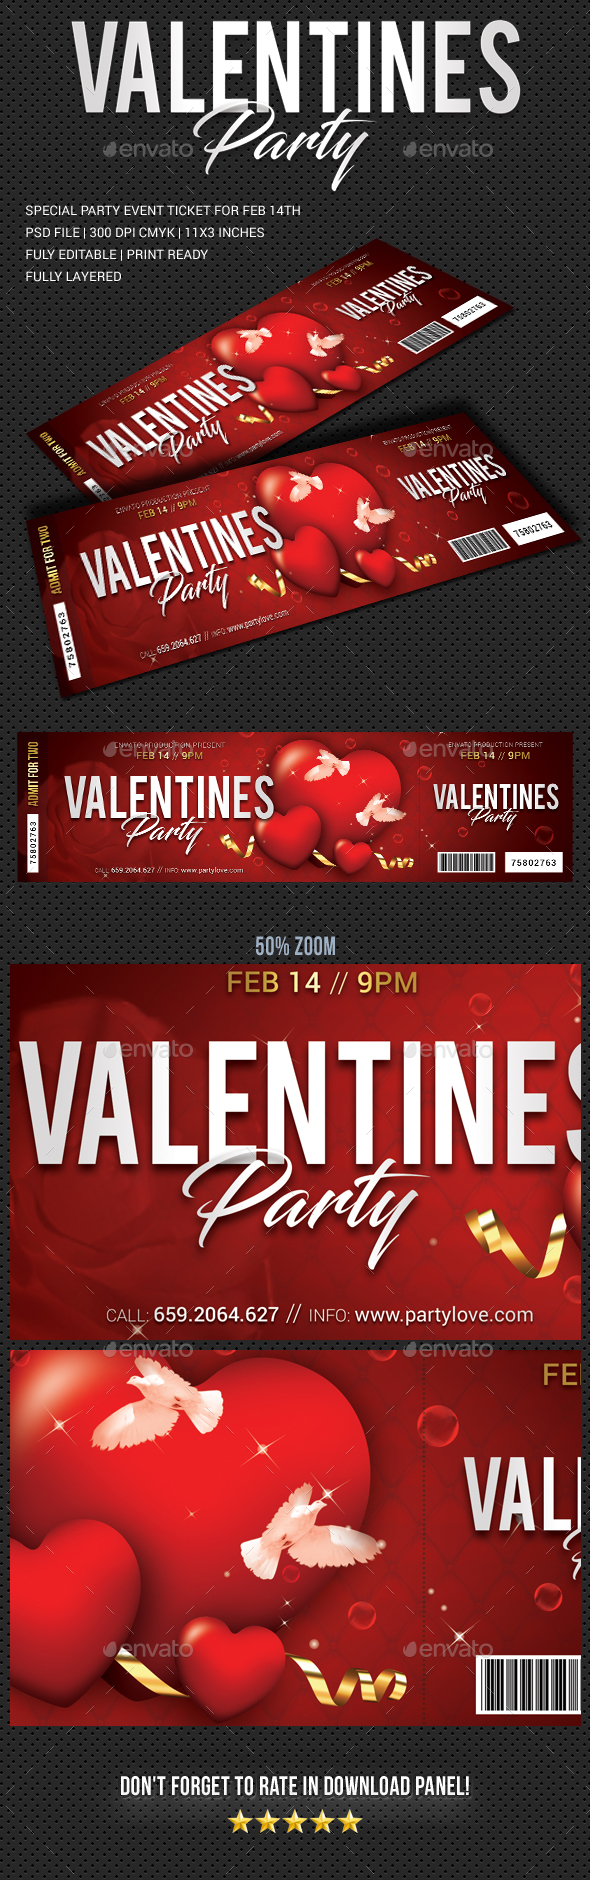 Valentines Party Event Ticket - Cards & Invites Print Templates